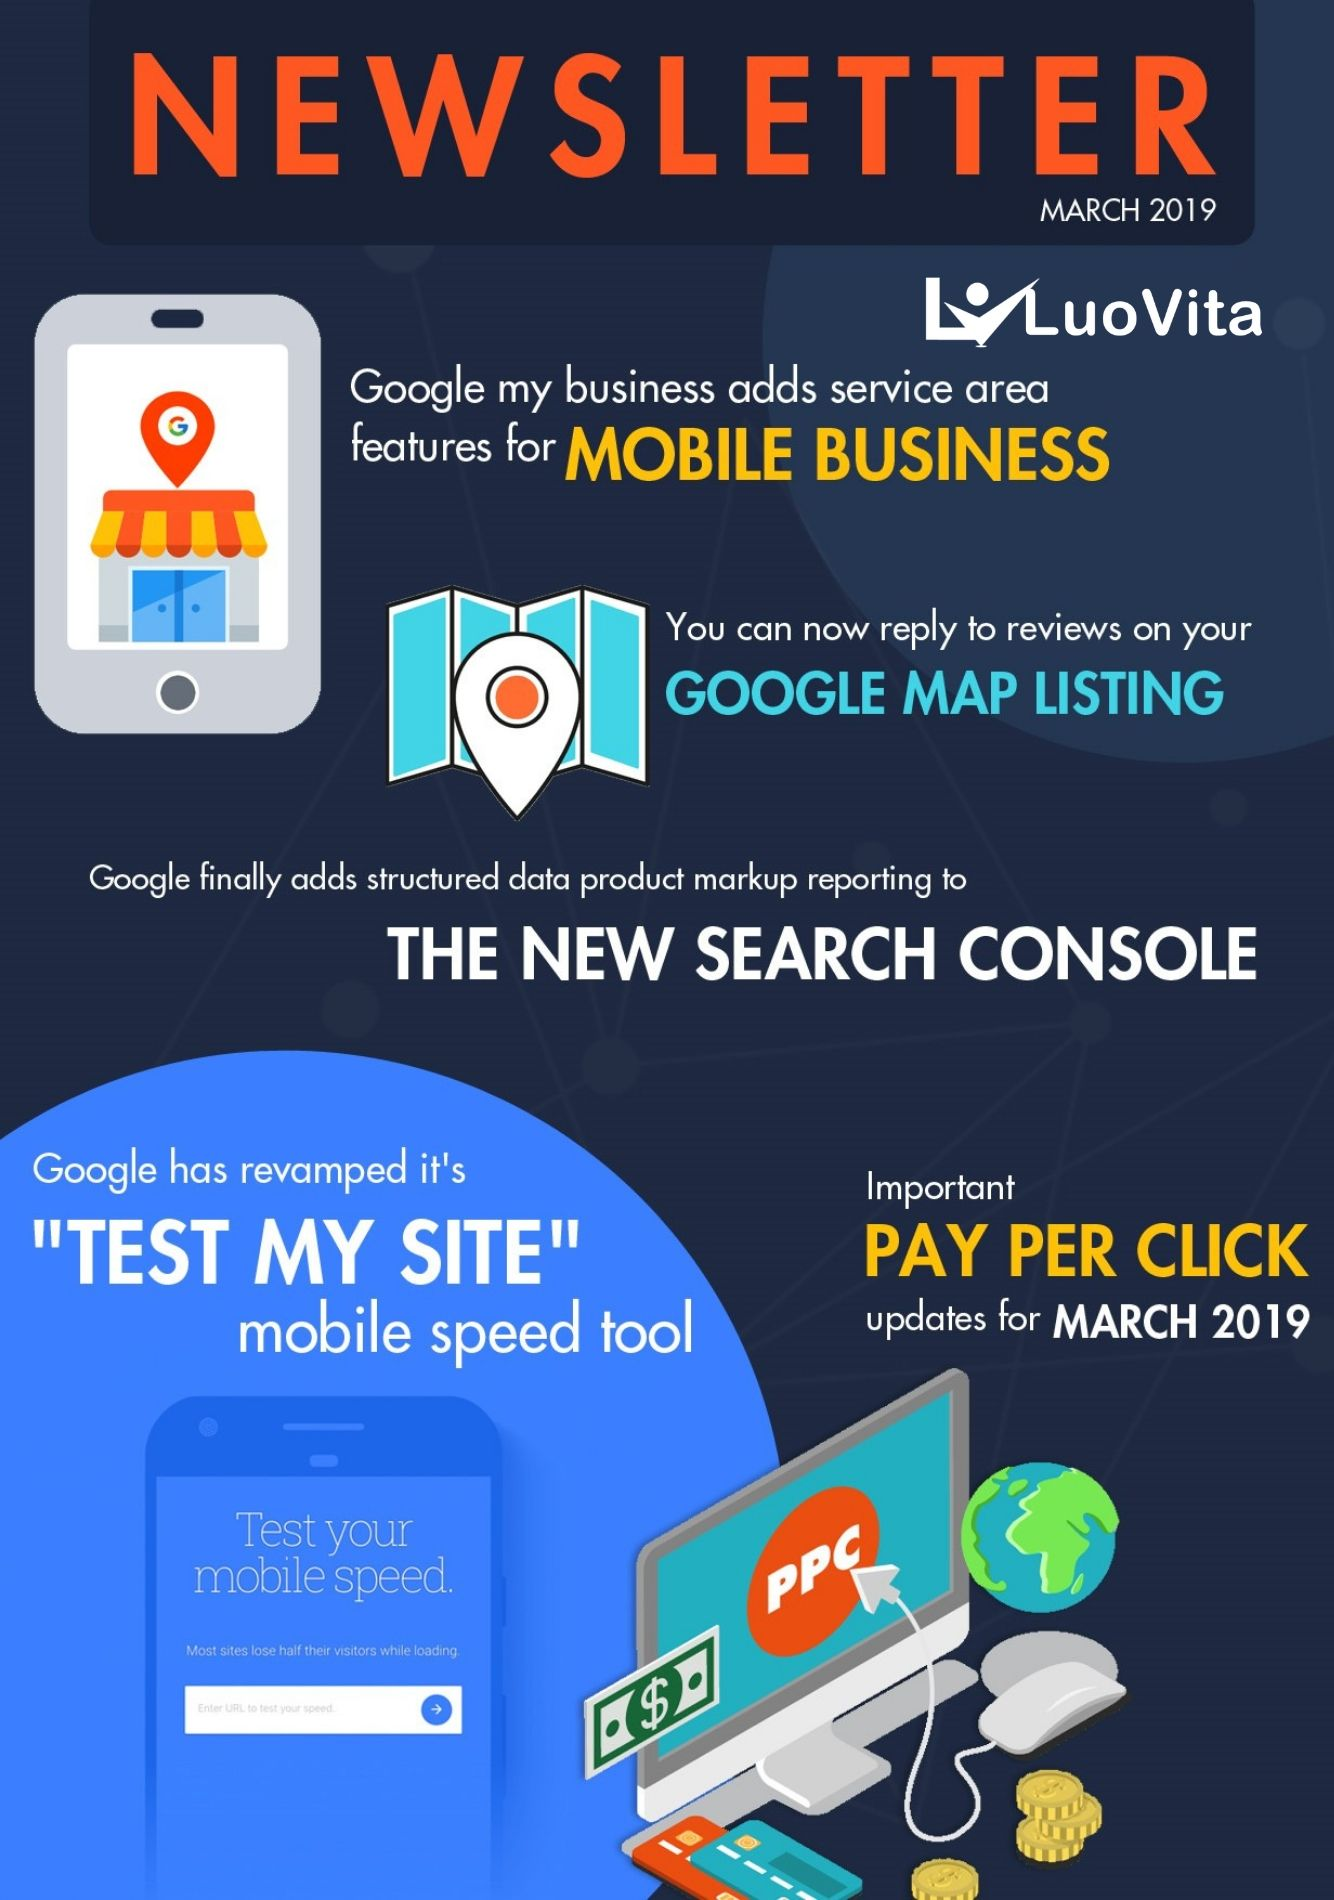 """Google Revamped """"Test My Site"""" Mobile Speed Tool – News March 2019, IMPORTANT PAY PER CLICK UPDATES FOR MARCH 2019, GOOGLE IS FINALLY GOING TO PULL THE PLUG ON GOOGLE+, GOOGLE HAS REVAMPED IT'S """"TEST MY SITE"""" MOBILE SPEED TOOL, GOOGLE FINALLY ADDS STRUCTURED DATA PRODUCT MARKUP REPORTING TO THE NEW SEARCH CONSOLE, YOU CAN NOW REPLY TO REVIEWS ON YOUR GOOGLE MAP LISTING, GOOGLE MY BUSINESS ADDS SERVICE AREA FEATURES FOR MOBILE BUSINESS, how to promote business using google, what is digital marketing, strategies to promote business online, tips to become succecssful entrepreneurs, best online marketing course, free online marketing course, free online marketing training, how to get more followers in social media, how to get positive reviews for my business, how earn big money online, how to become rich, free business logo, how to create a business profile"""